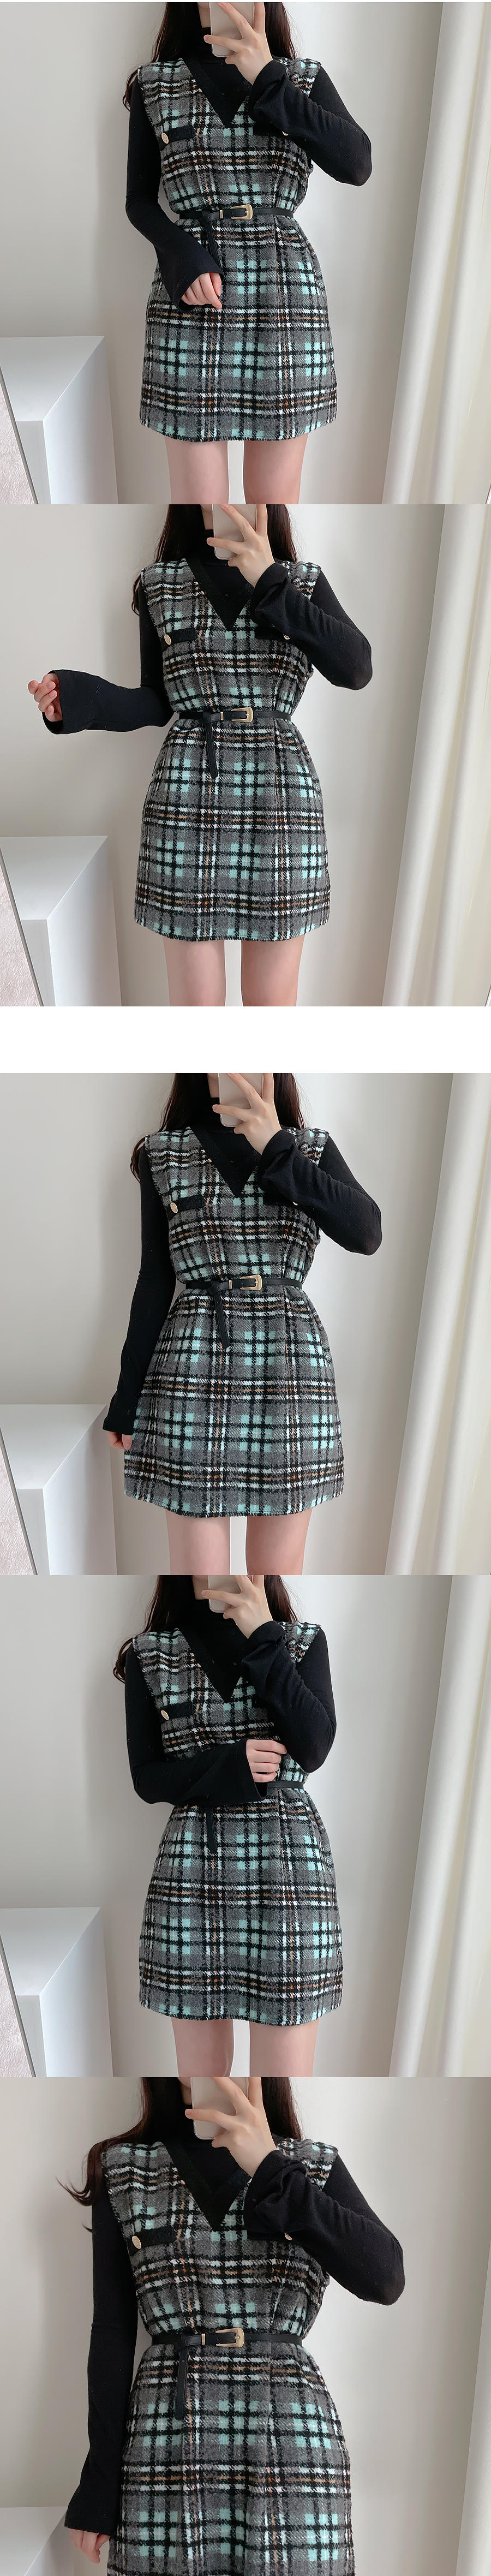 Jenny Check Dress 2color